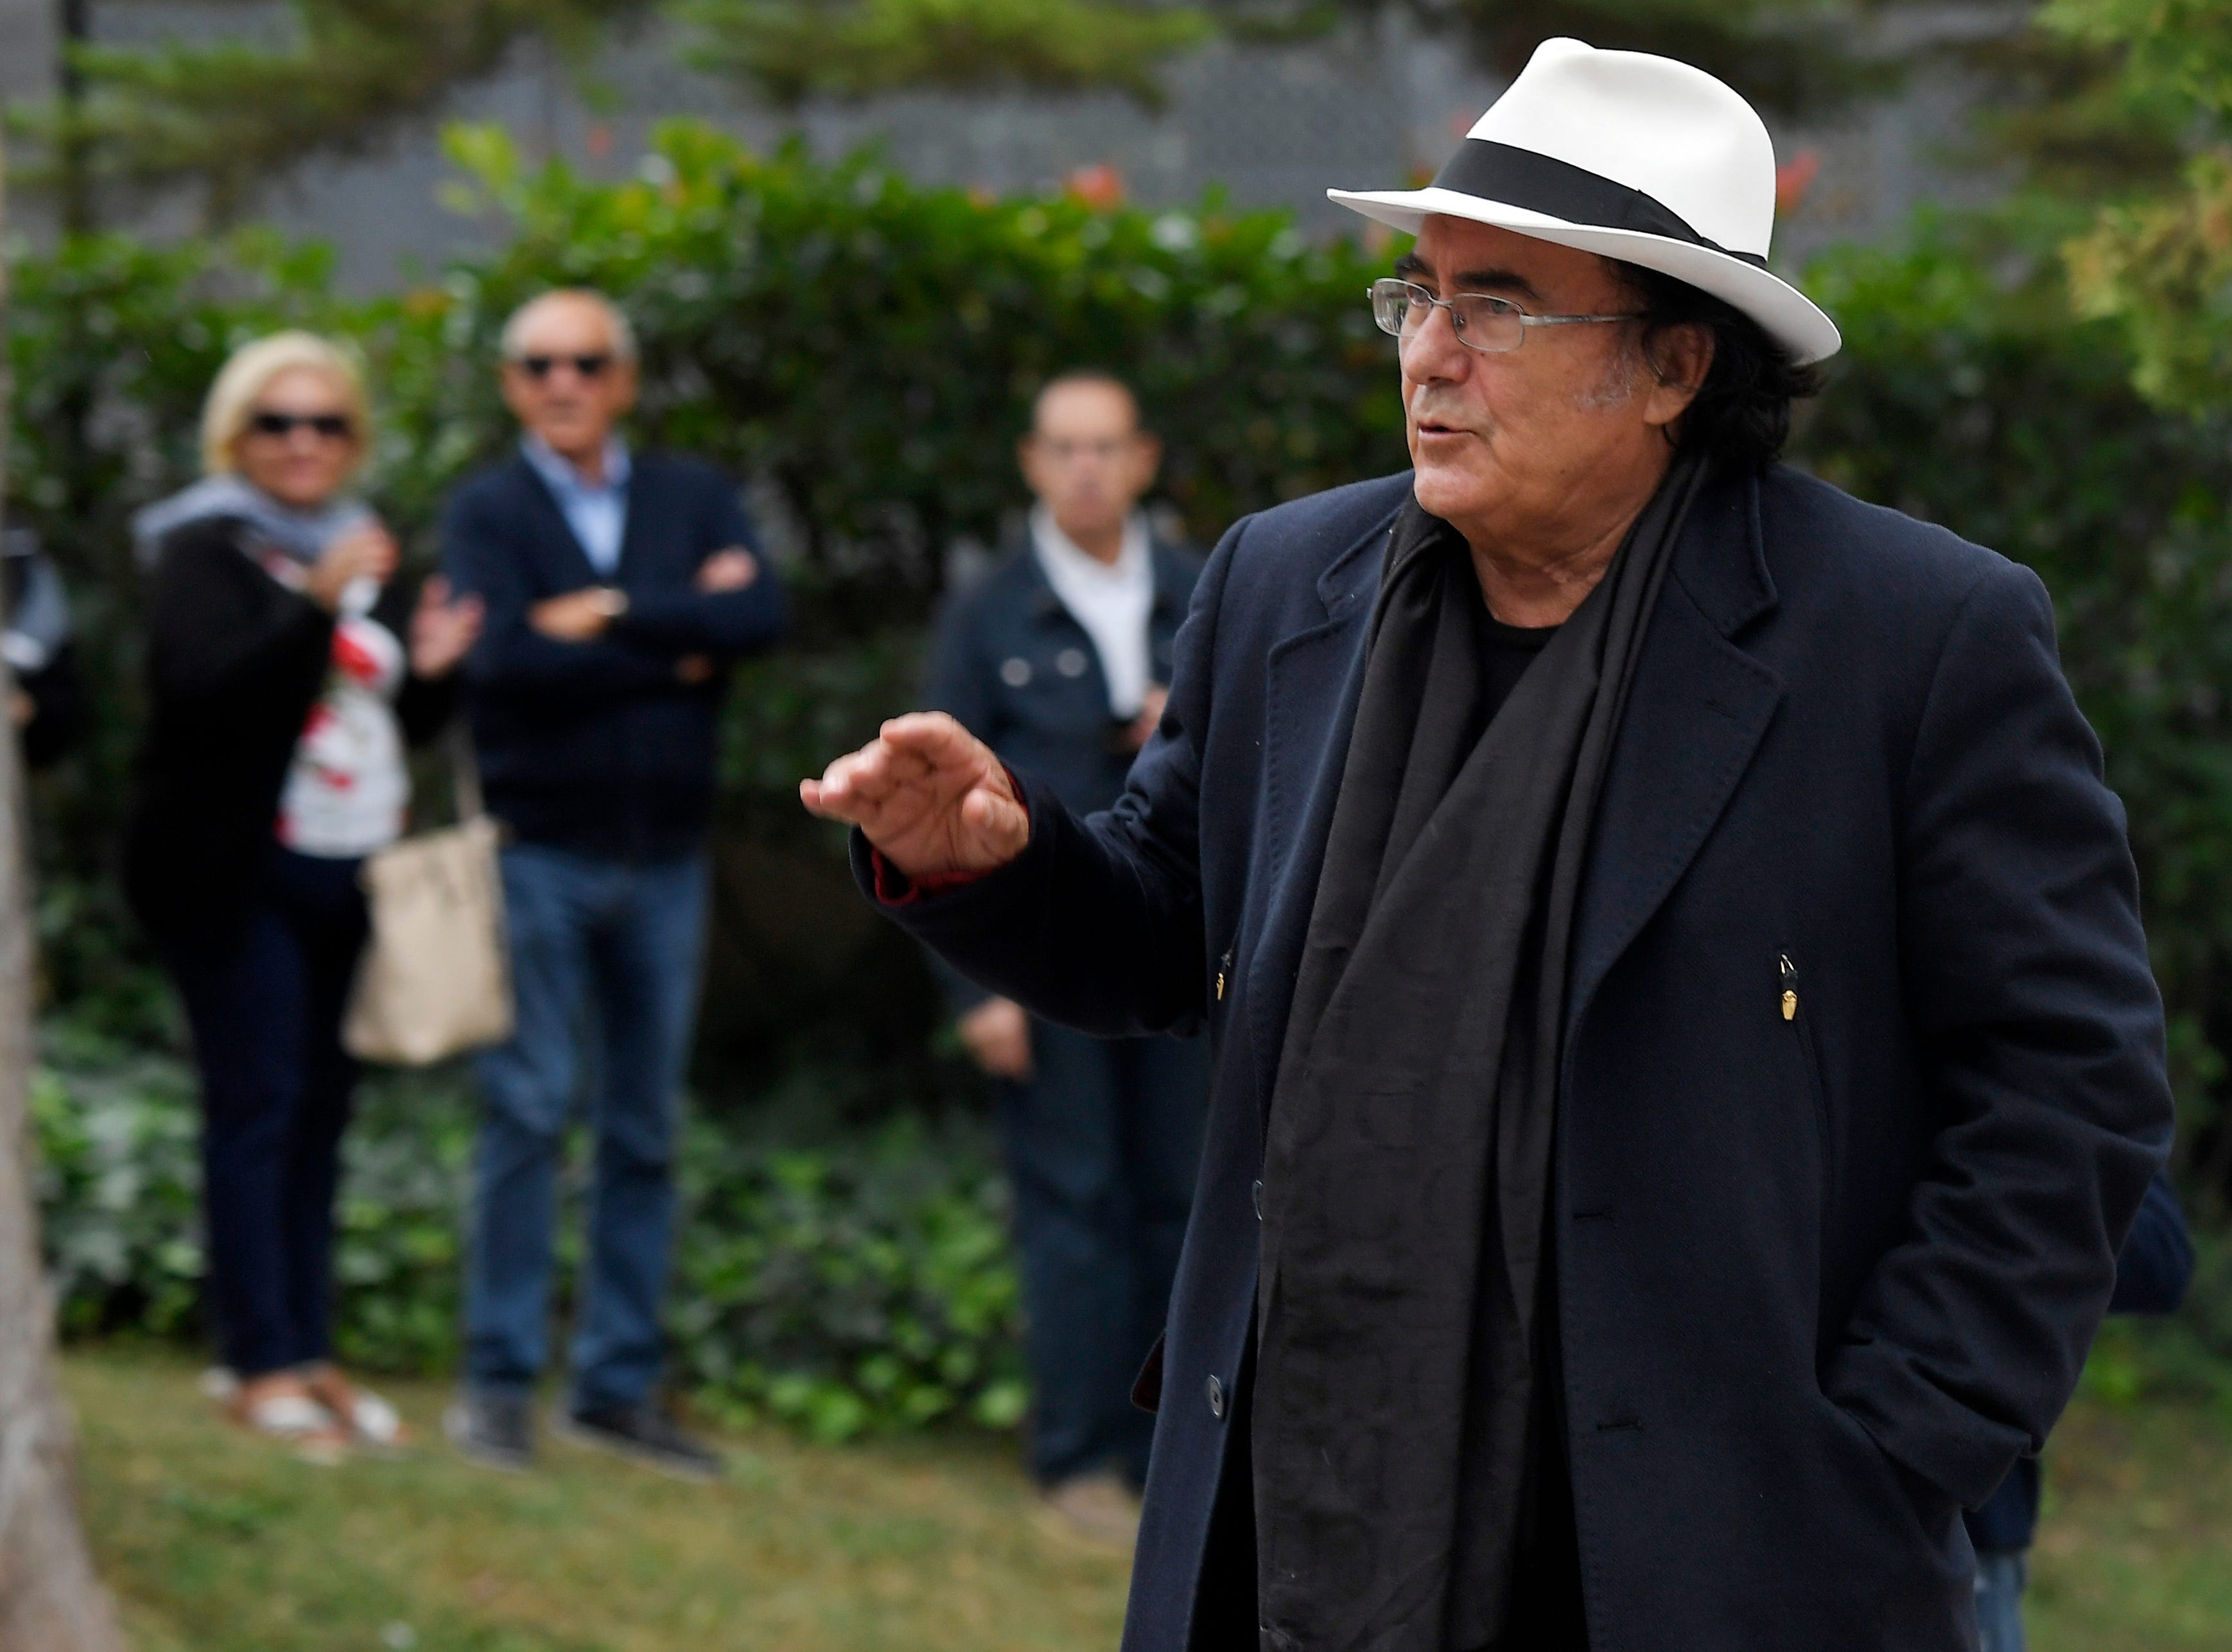 Italian recording artist, actor, and winemaker Albano Carrisi, better known as Al Bano, arrives to attend the funeral for Spanish opera singer Montserrat Caballe in Barcelona on Oct. 8, 2018.